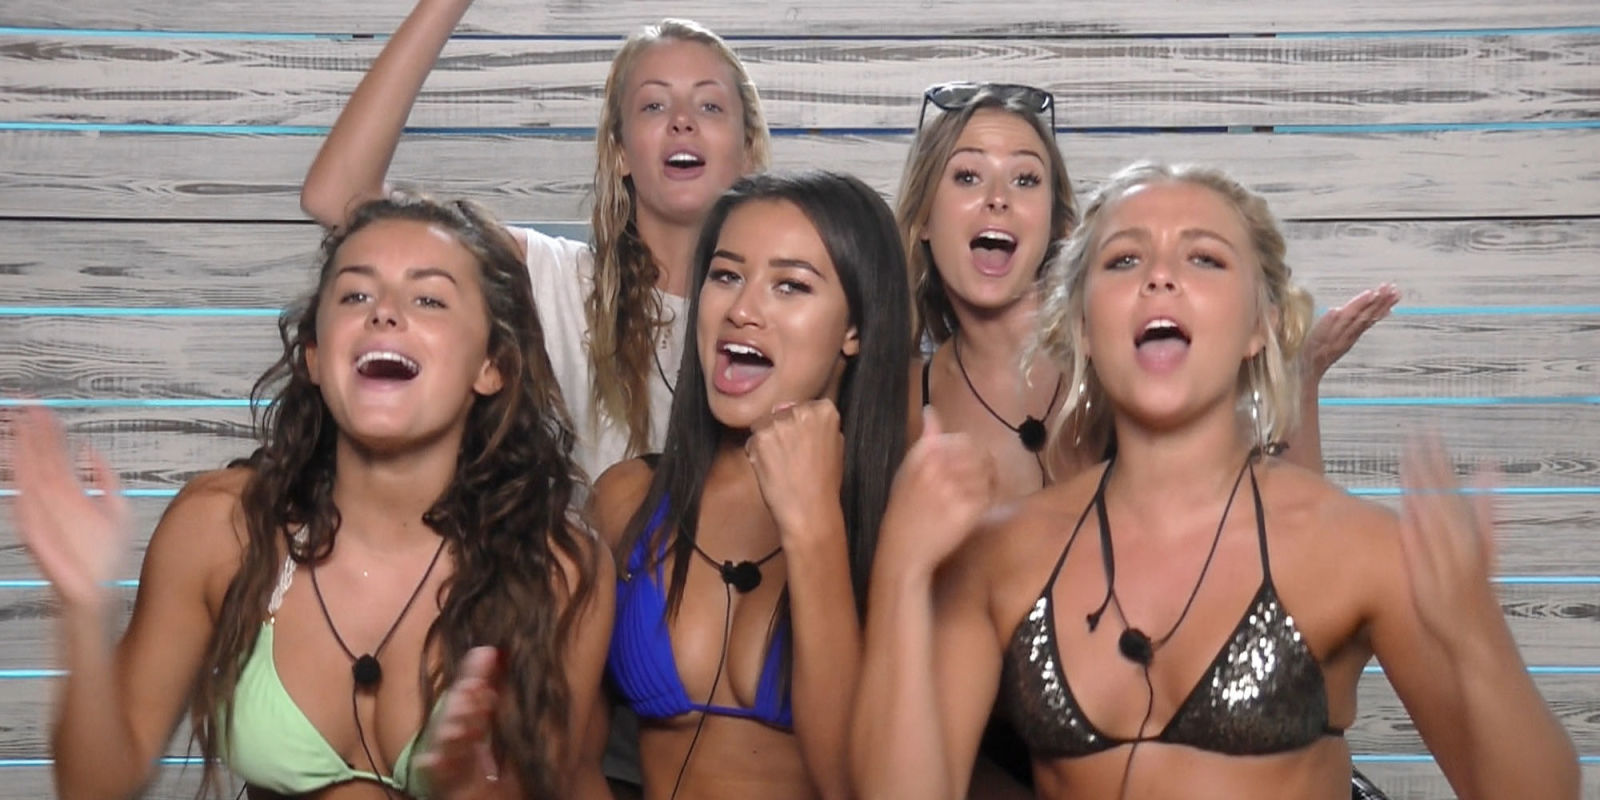 the female contestants of love island